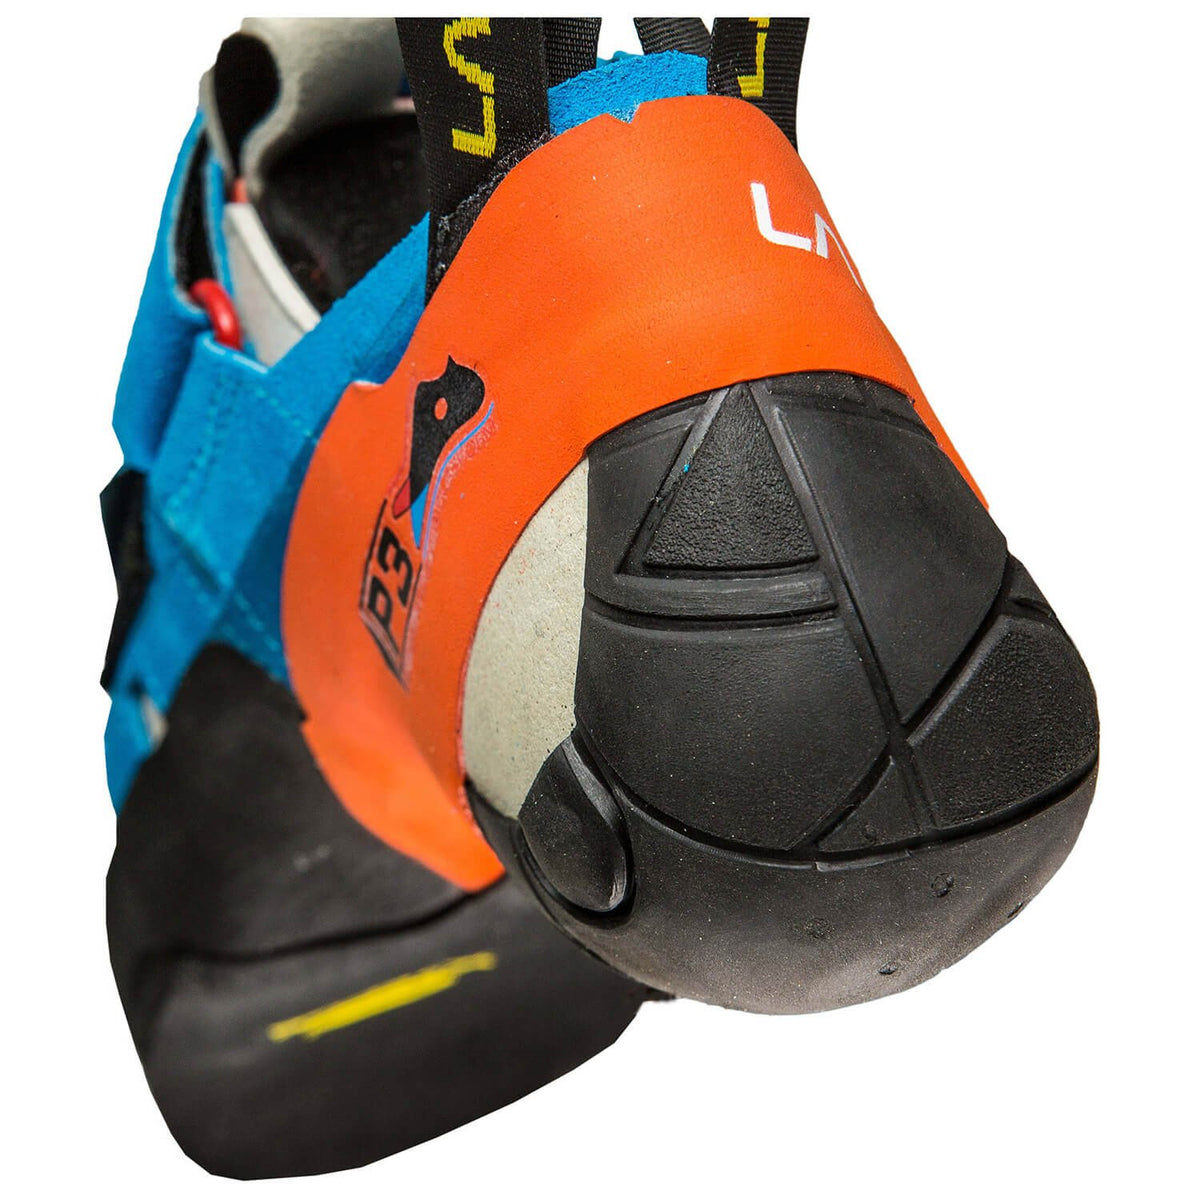 La Sportiva Otaki climbing shoe, view of the heel design